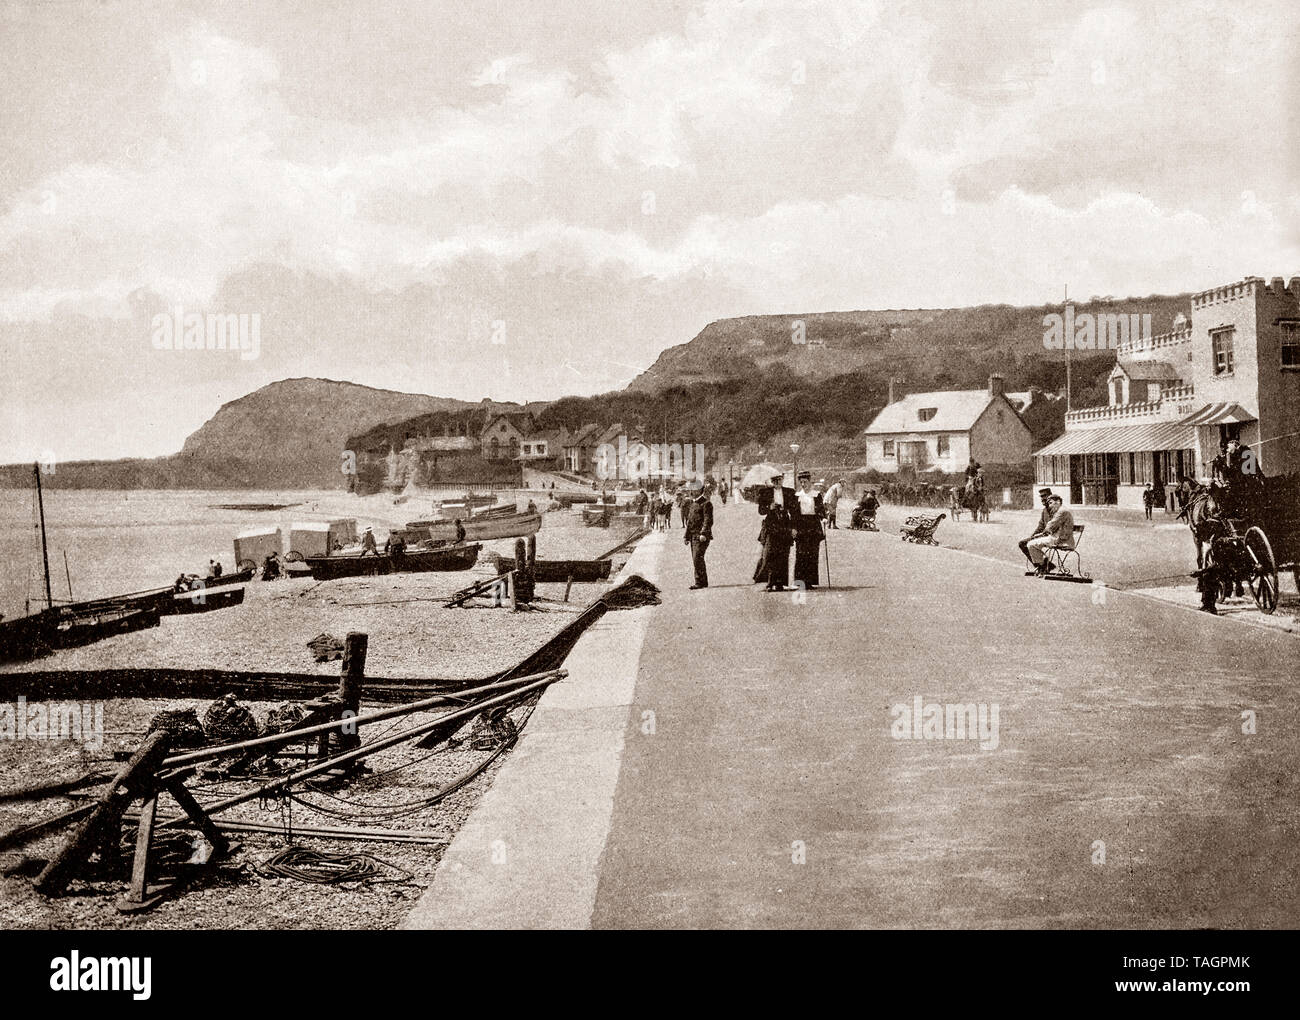 A late 19th Century view of  the shore and seafront at Sidmouth,  a town situated on the English Channel coast in Devon, South West England. It remained a village until the fashion for coastal resorts grew in the Georgian and Victorian periods of the 18th and 19th centuries. A number of Georgian and Regency buildings still remain. In 1874, Sidmouth was connected to the railway network by a branch line contibuting to the growth in visitors and tourists. - Stock Image